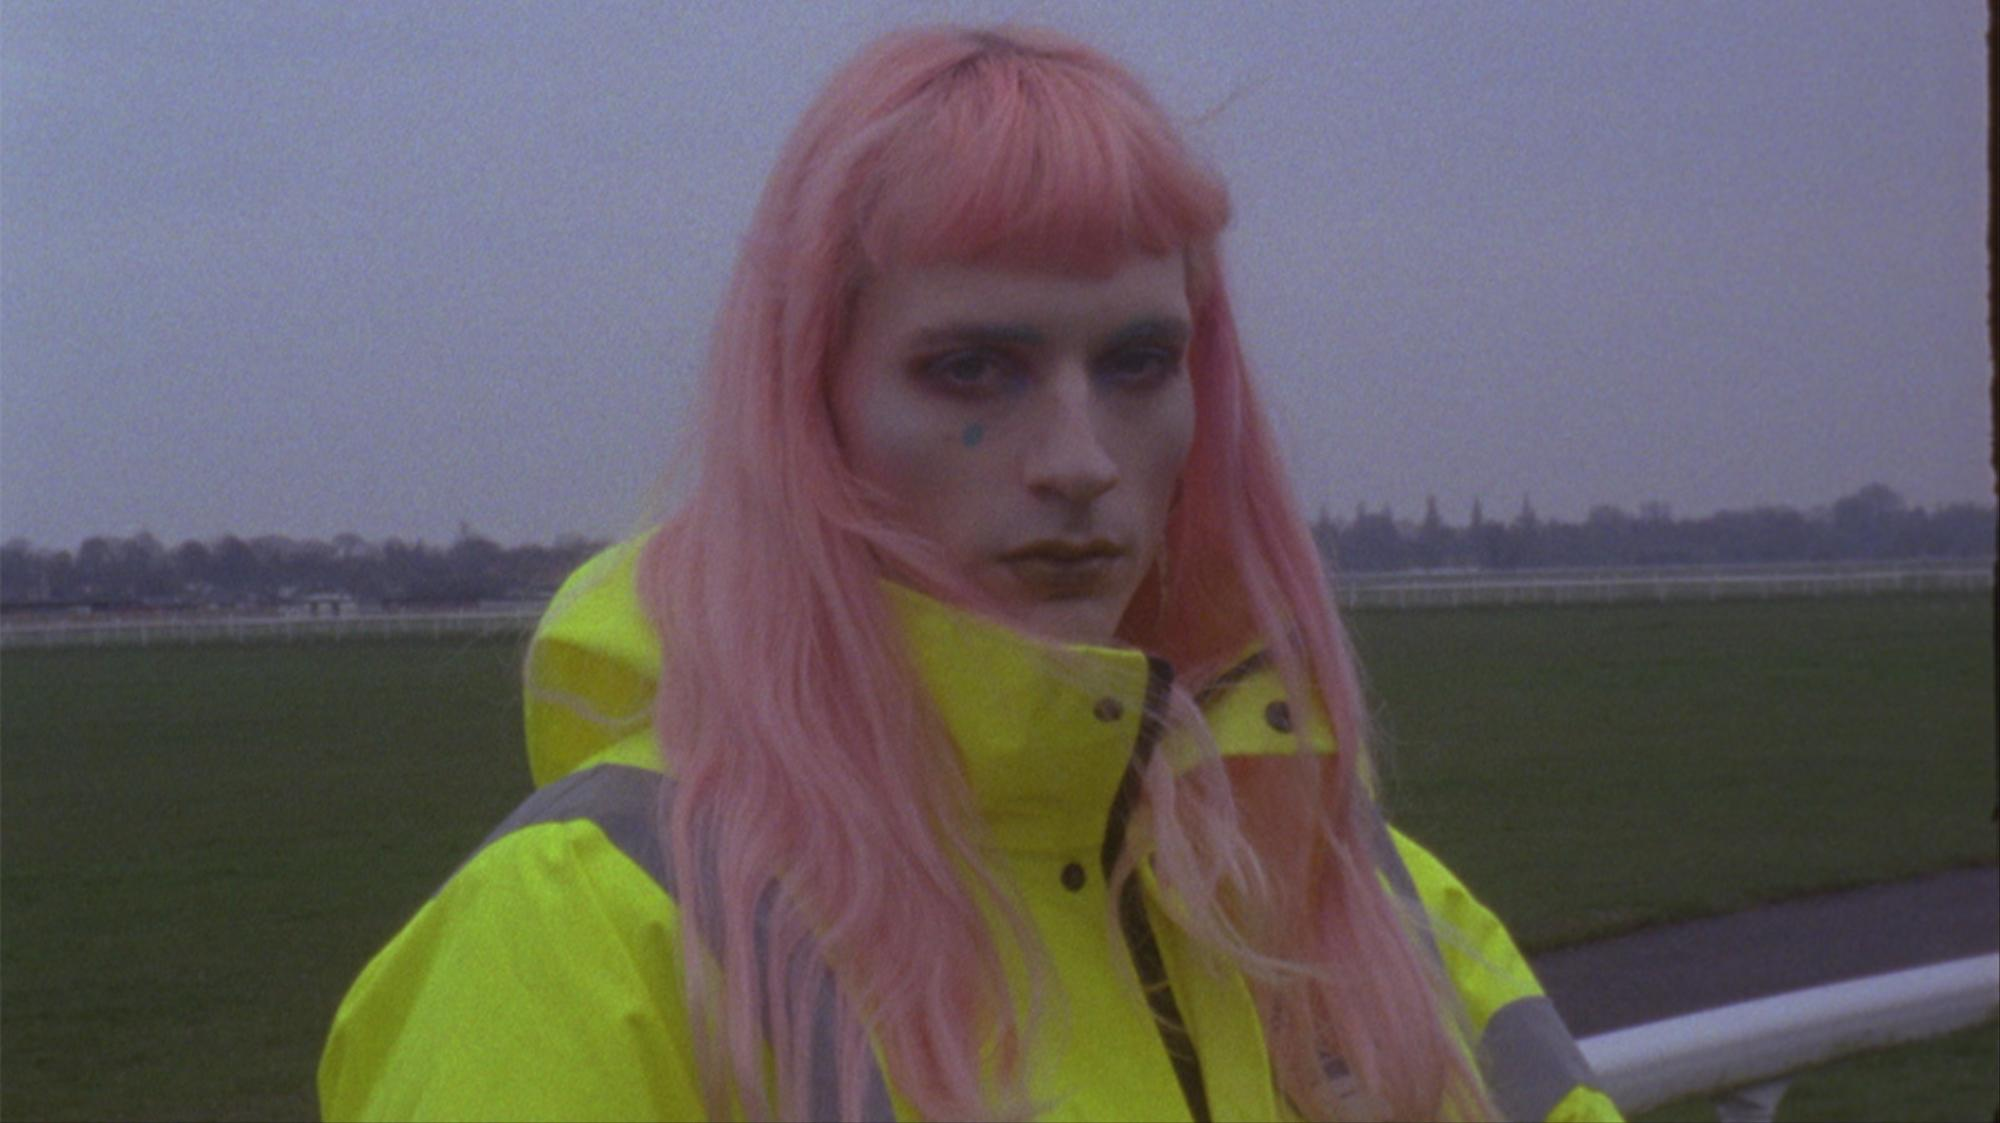 i-D meets matty bovan, the rainbow-coloured star of london's fashion scene